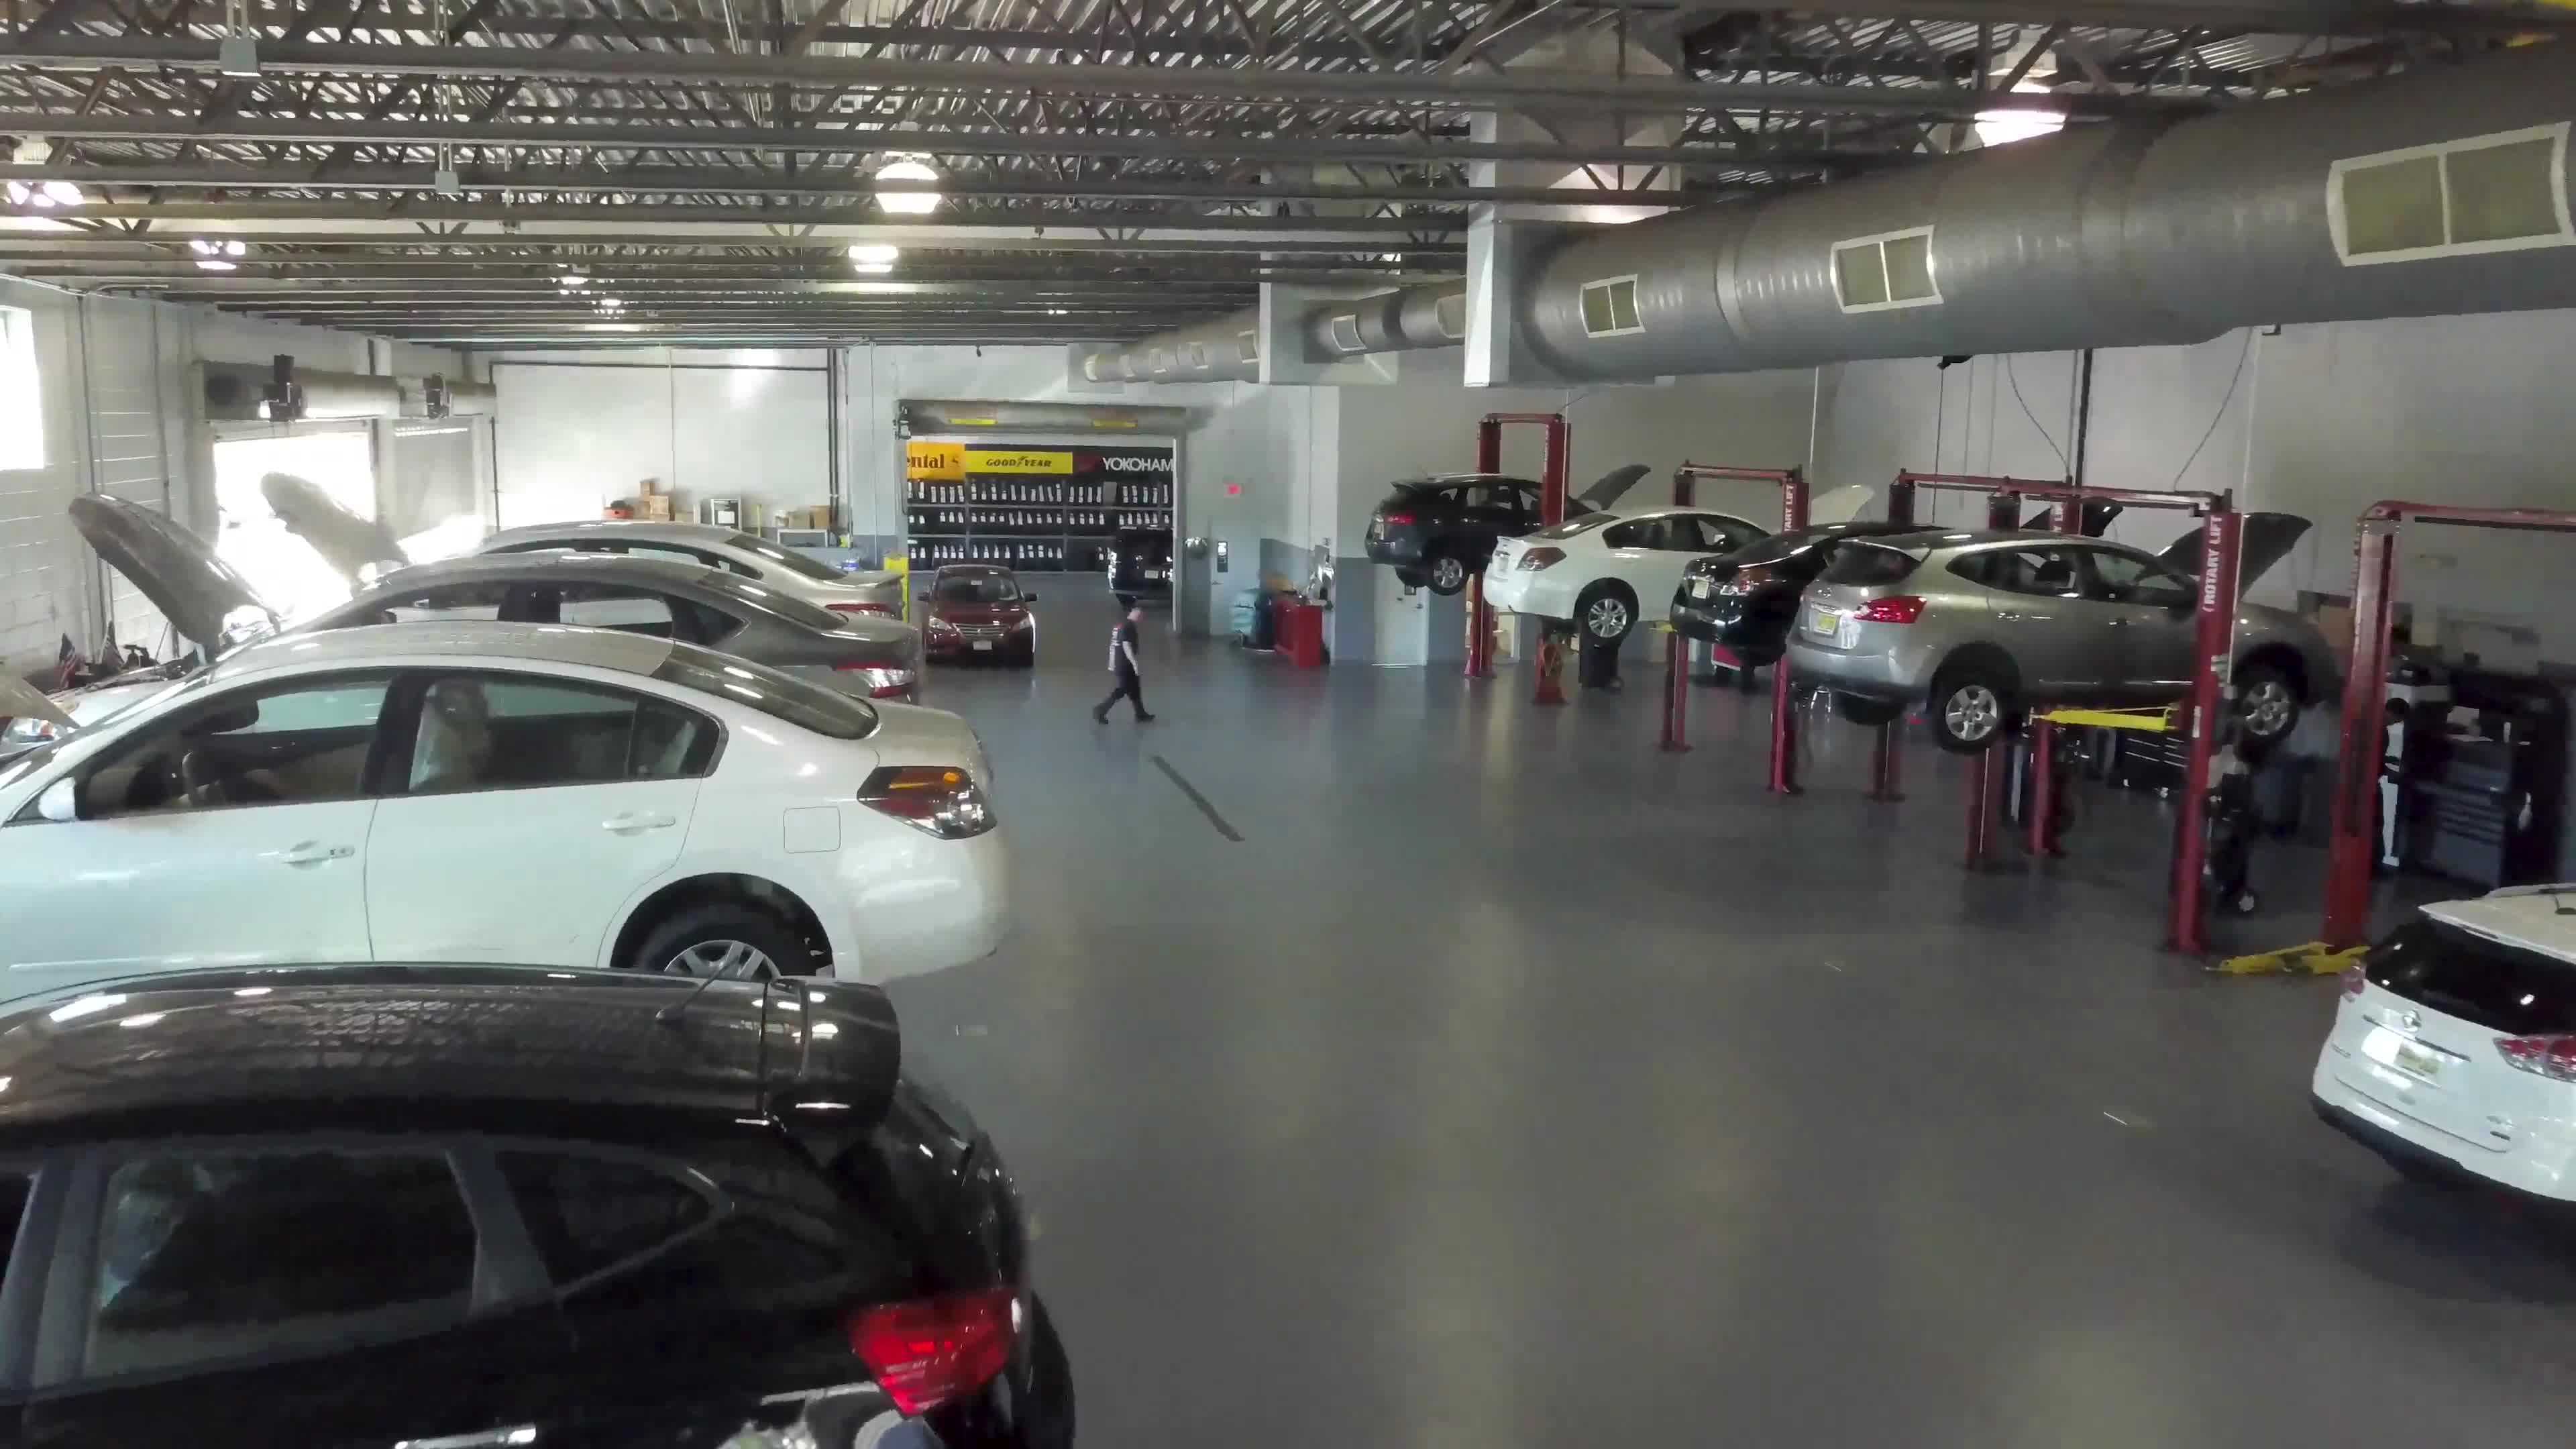 Used Car Dealers south Jersey Beautiful Nissan Dealer toms River Nj New Used Cars for Sale Near Trenton Nj